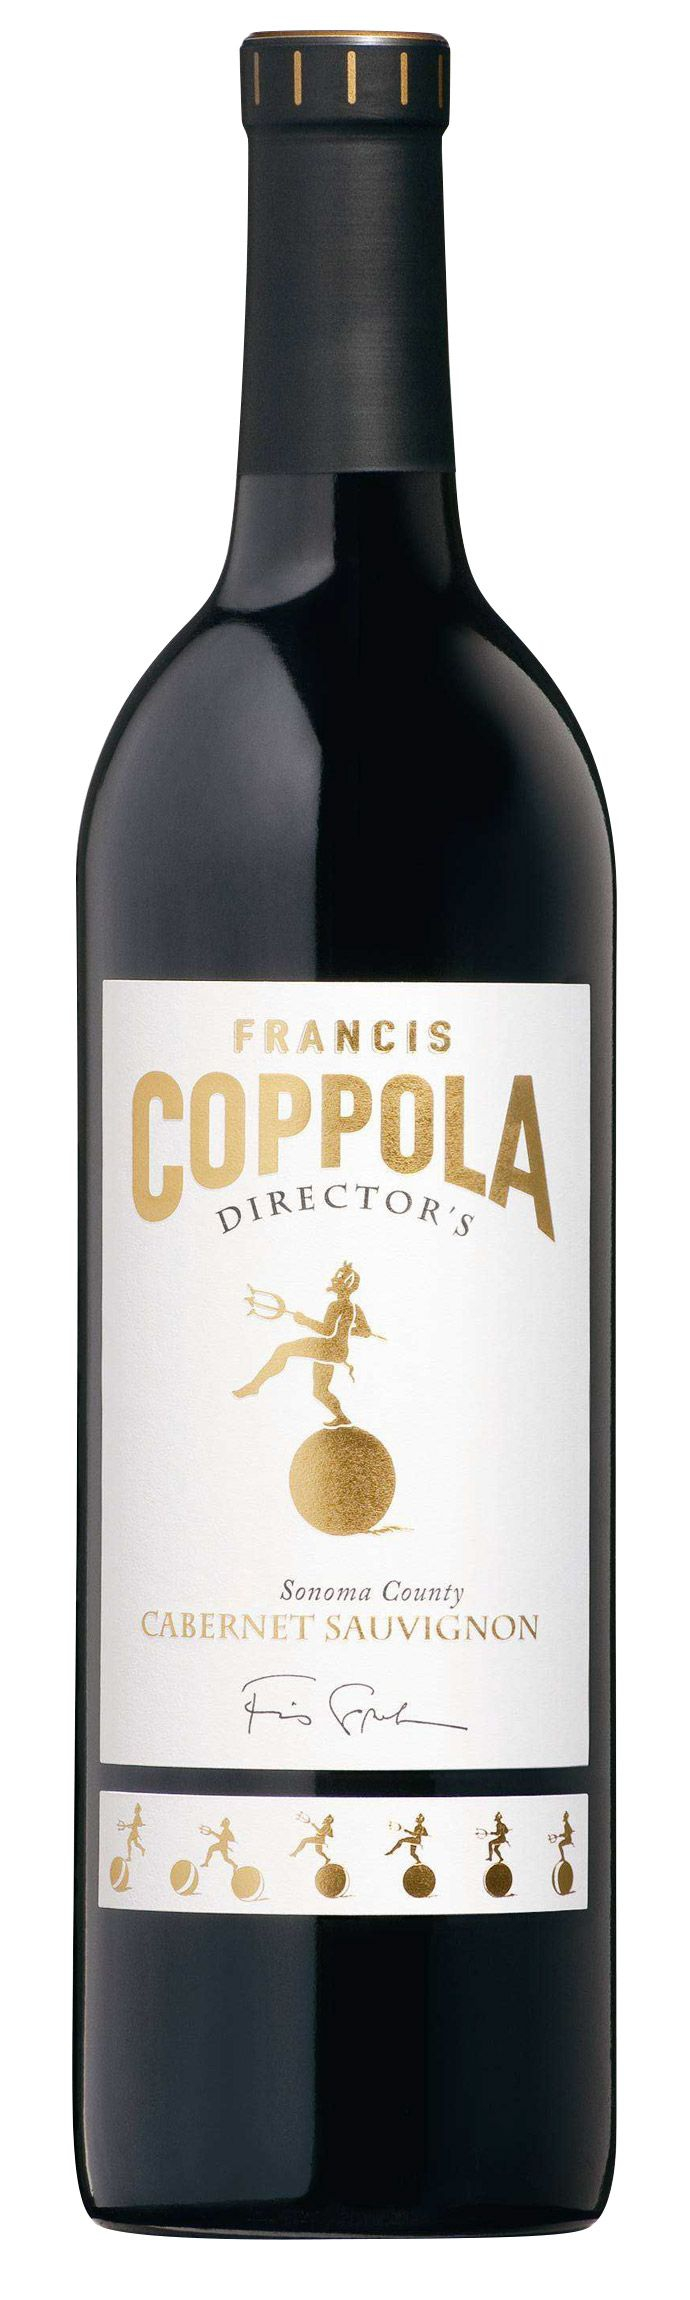 francis ford coppola director s cabernet sauvignon 2015. Black Bedroom Furniture Sets. Home Design Ideas